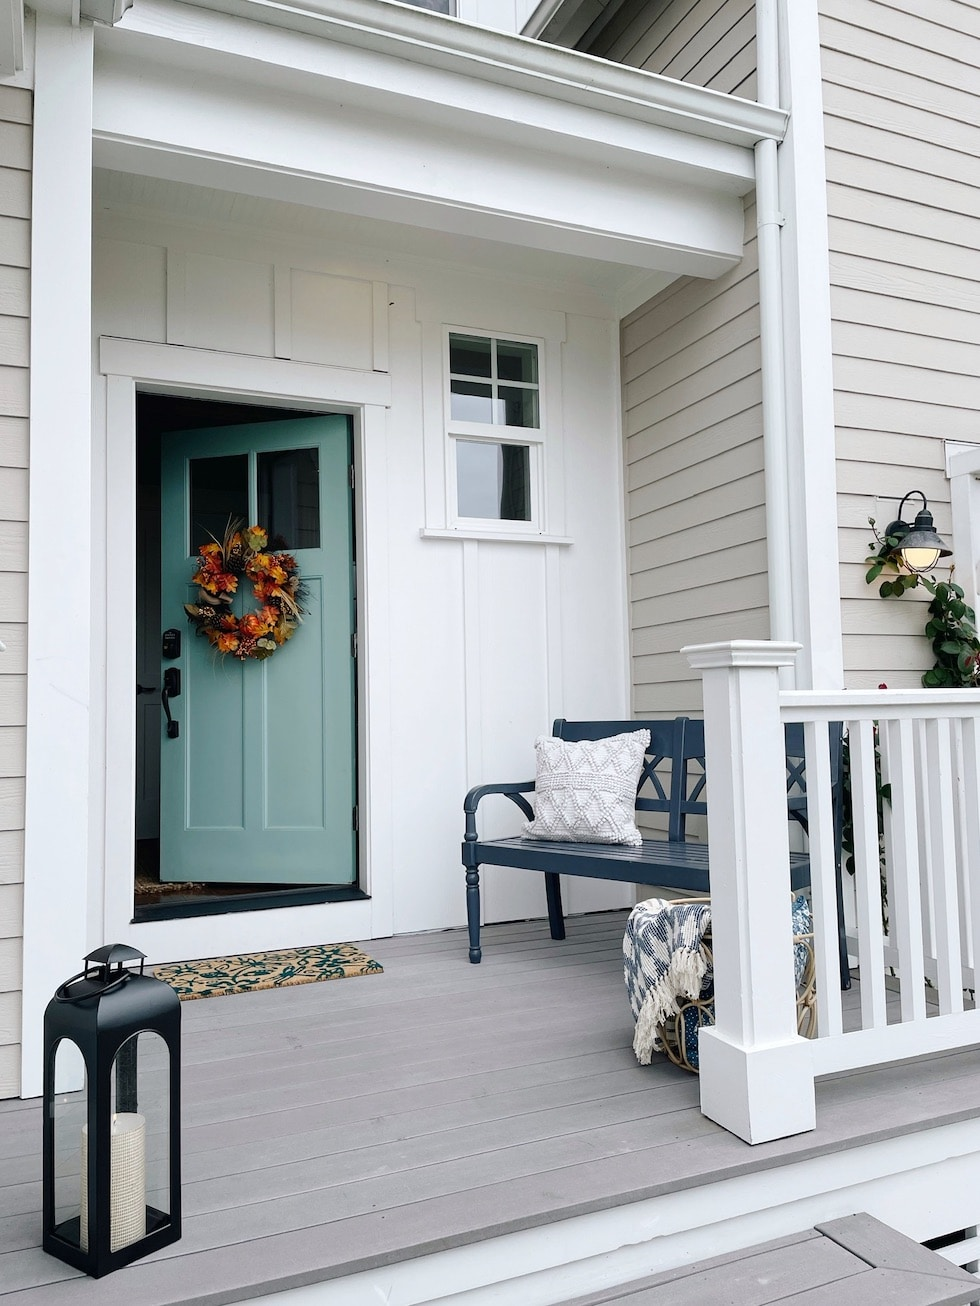 Decorate our new porch and entryway for fall